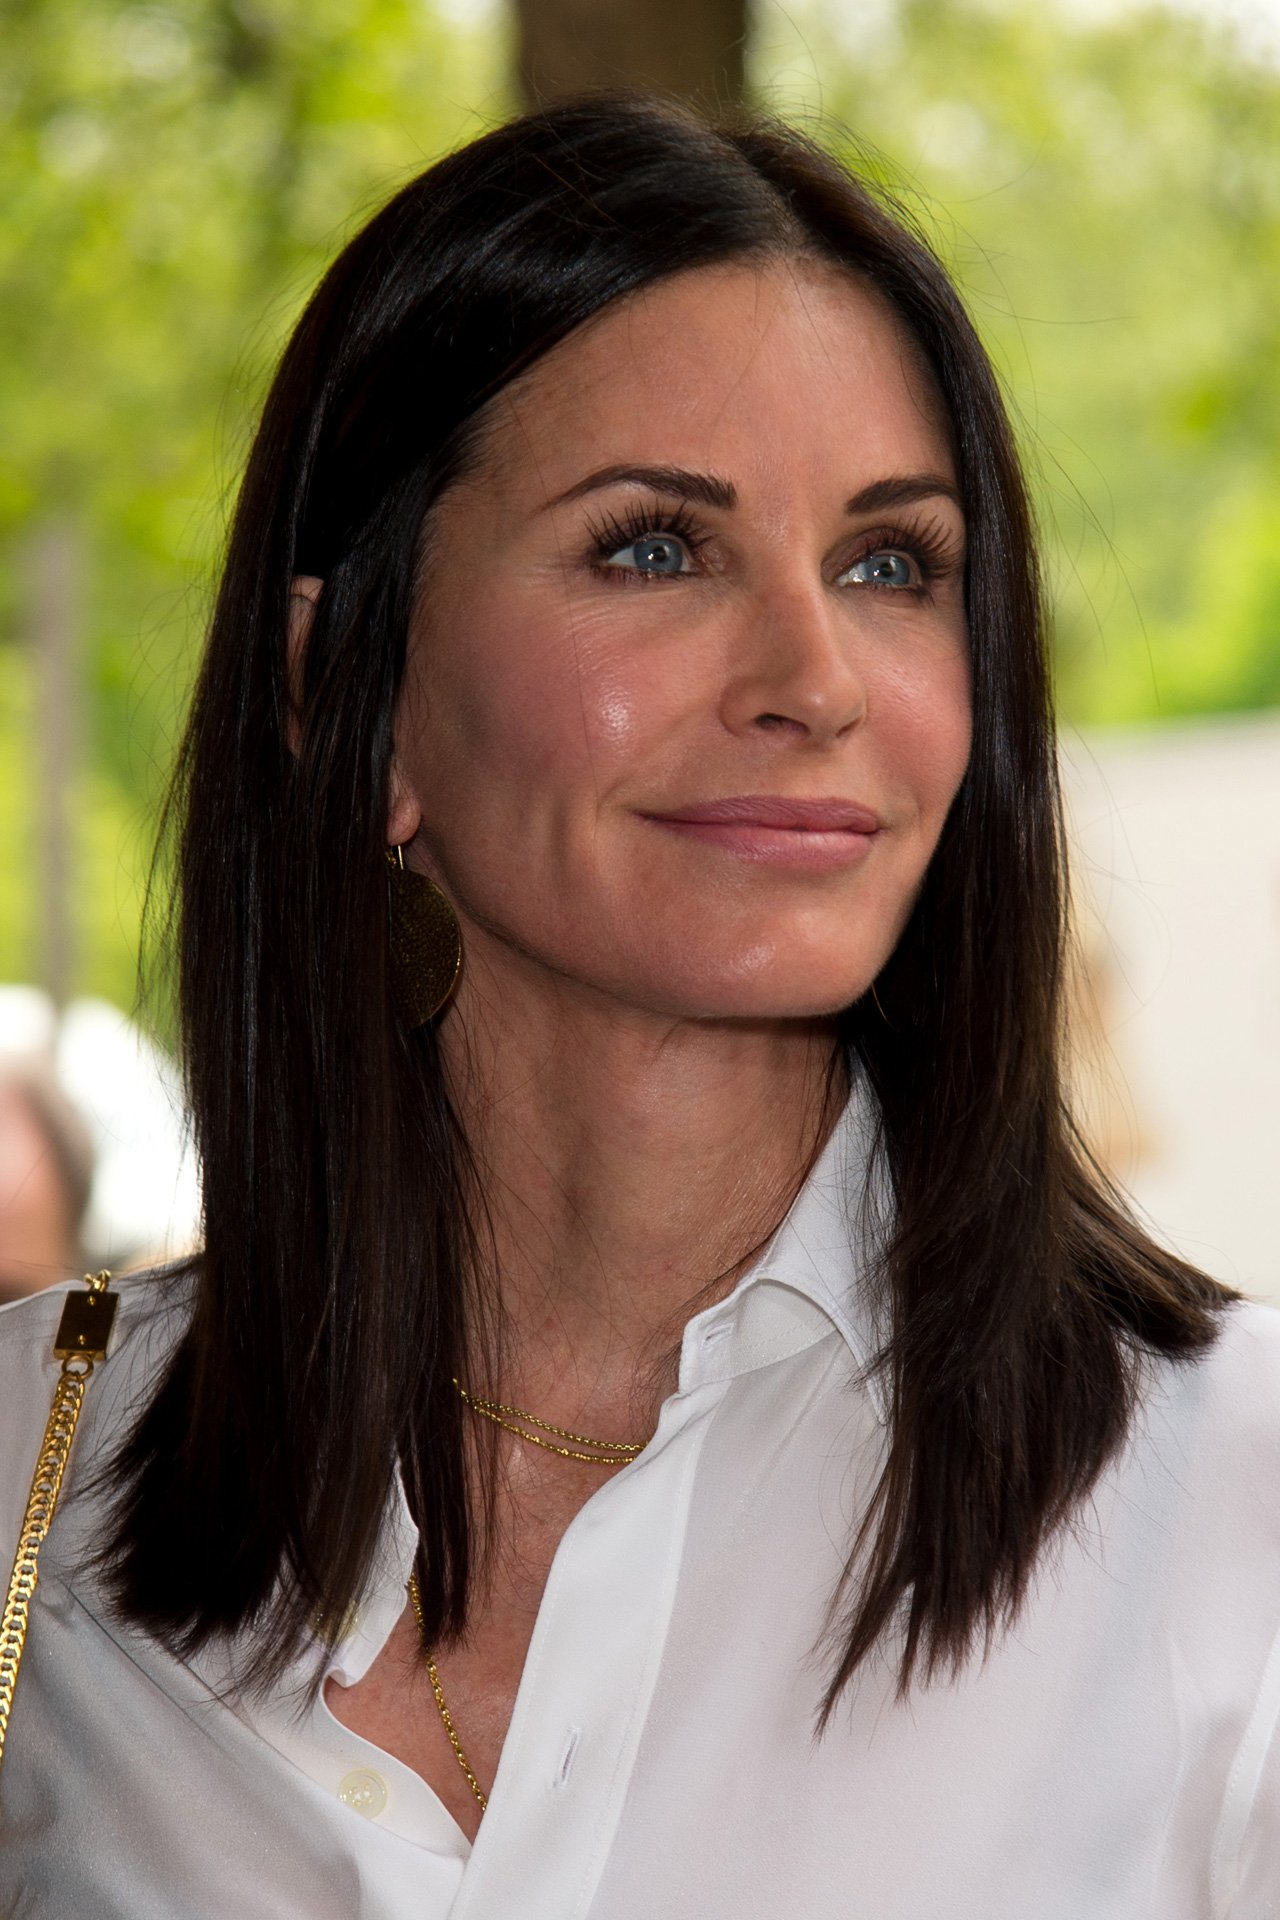 What does Courteney Cox have to say about her previous cosmetic procedures? https://t.co/jonvtLcbzy https://t.co/bt7kveo9Jy